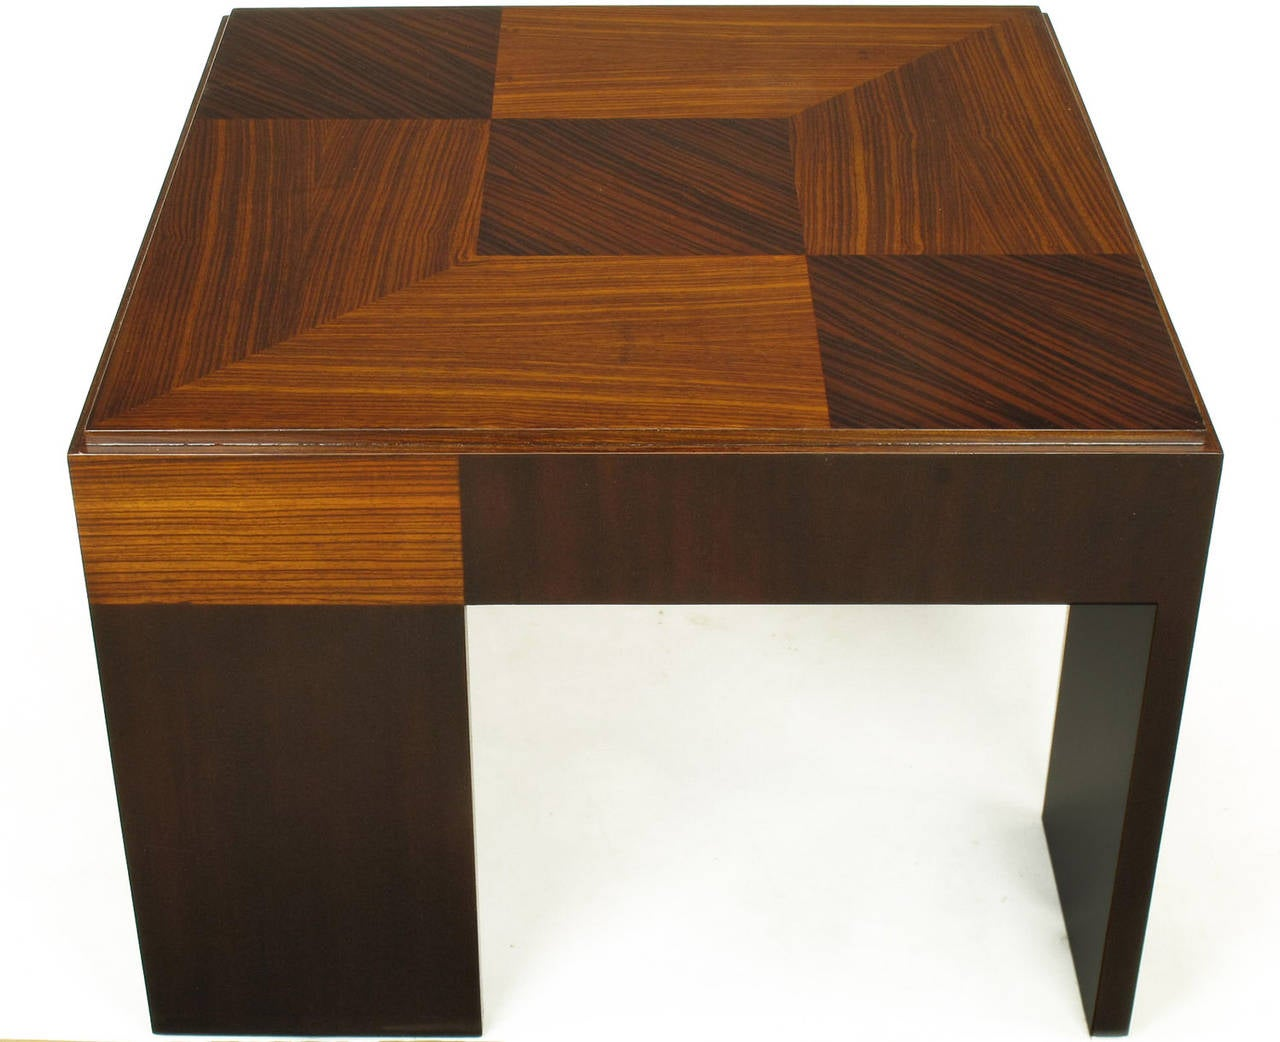 Late 20th Century John Widdicomb Natural and Bleached Macassar Ebony and Walnut Coffee Table For Sale